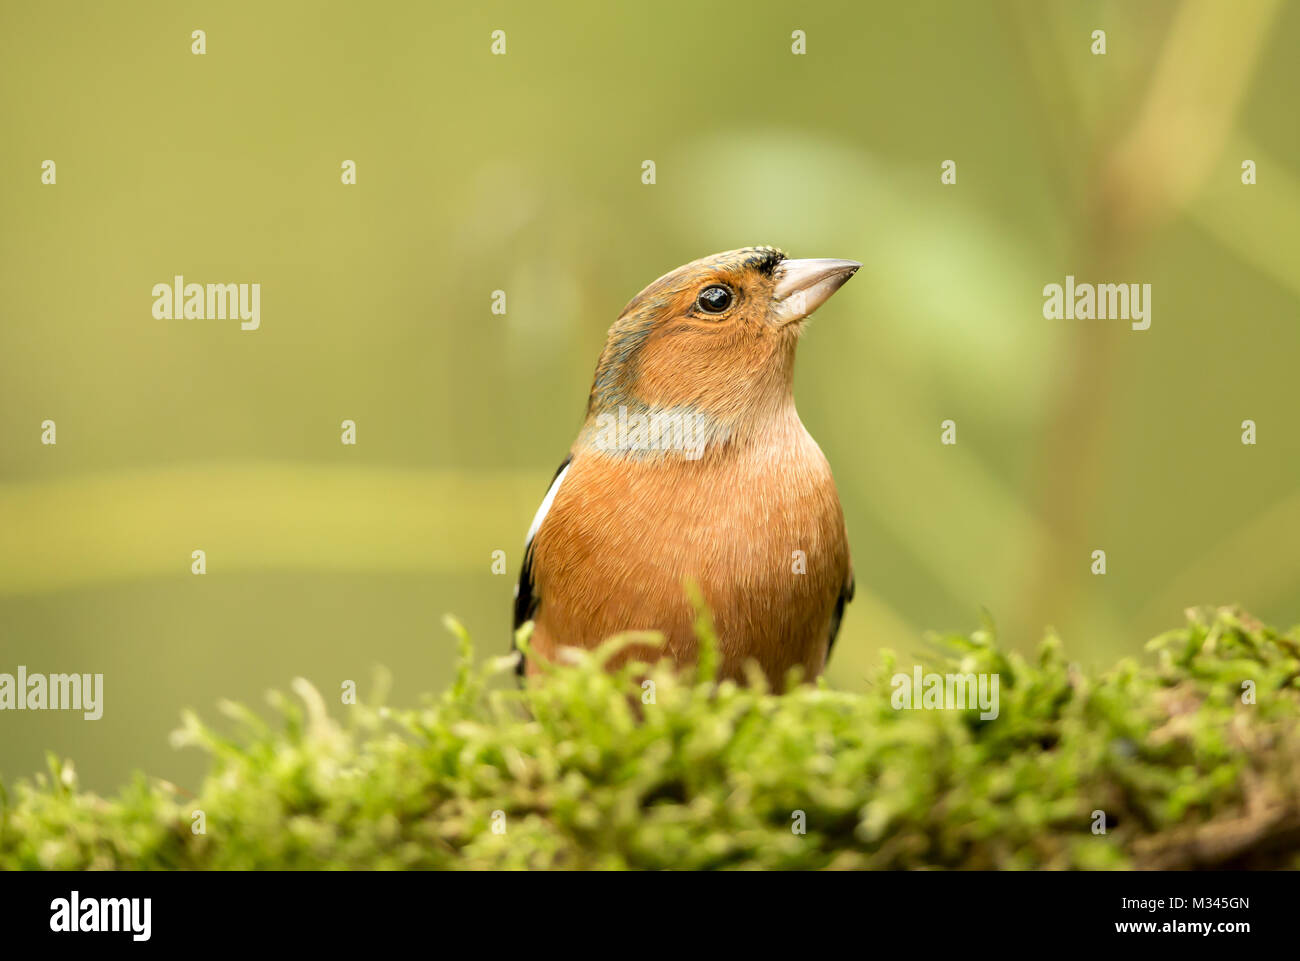 Male Chaffinch on green, moss covered log with blurred background - Stock Image